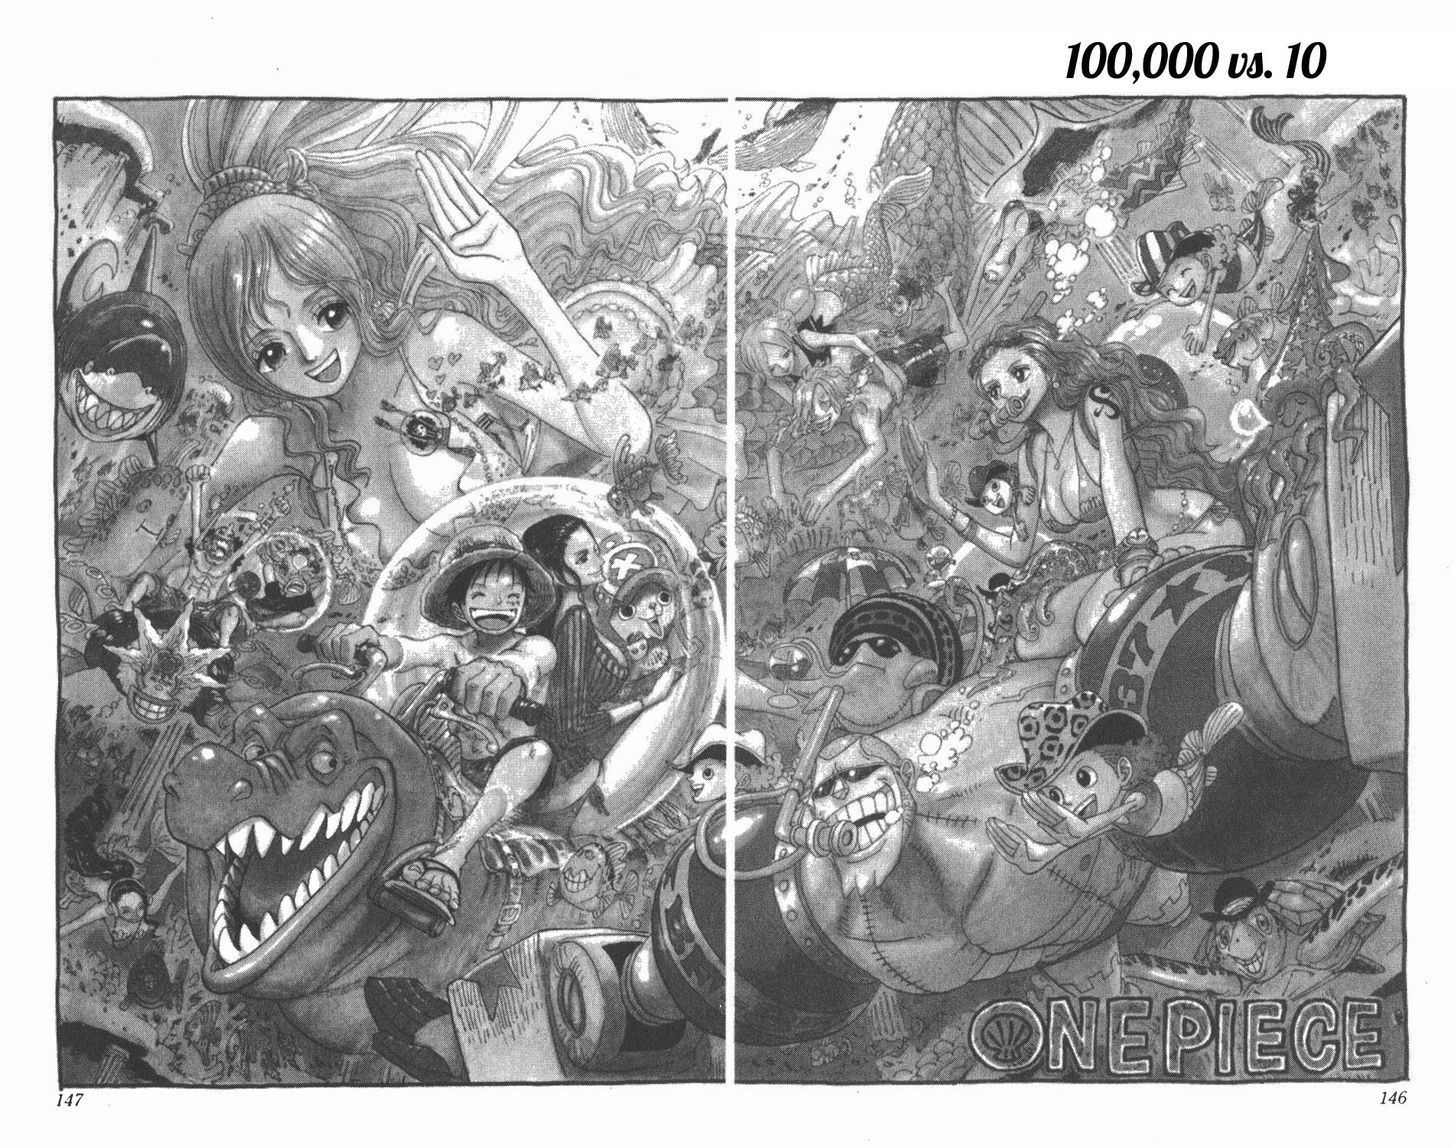 https://im.nineanime.com/comics/pic9/32/96/2983/OnePiece6340860.jpg Page 1